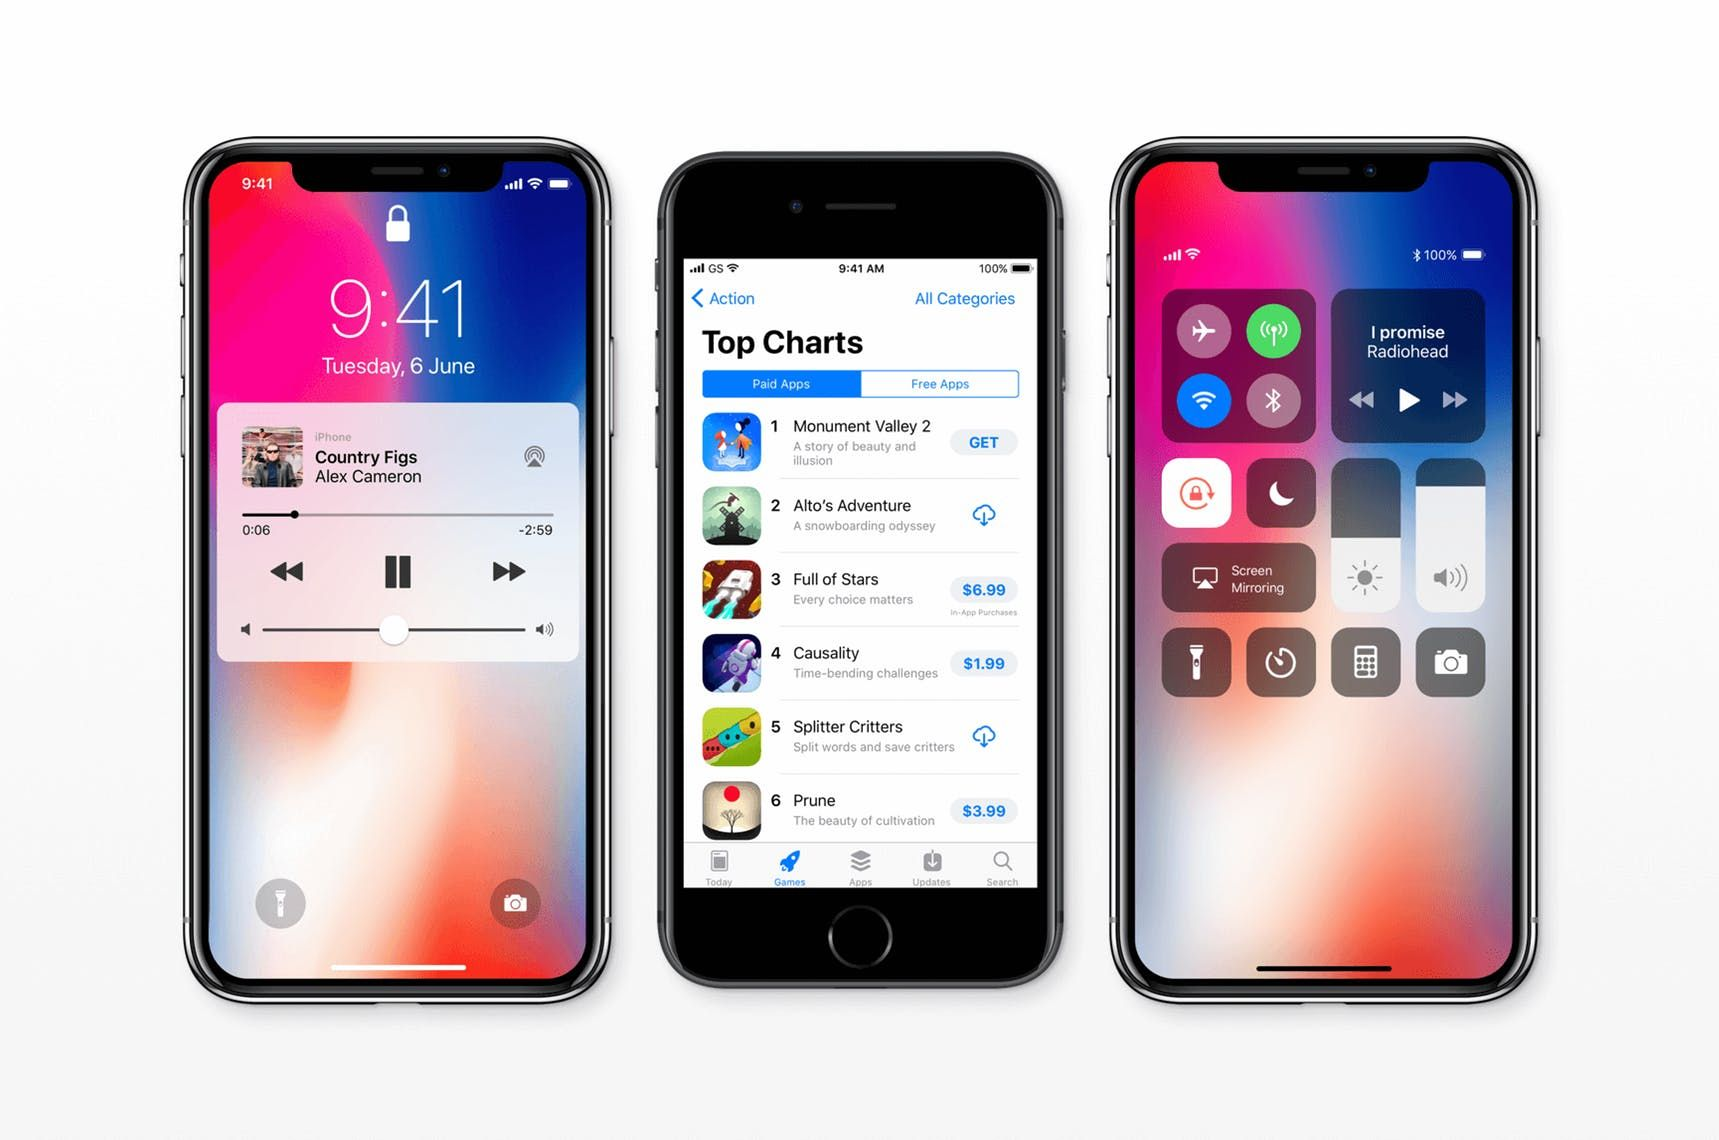 Ios 11 Gui For Iphone X And Iphone 8 Fresh Screens From Ios 11